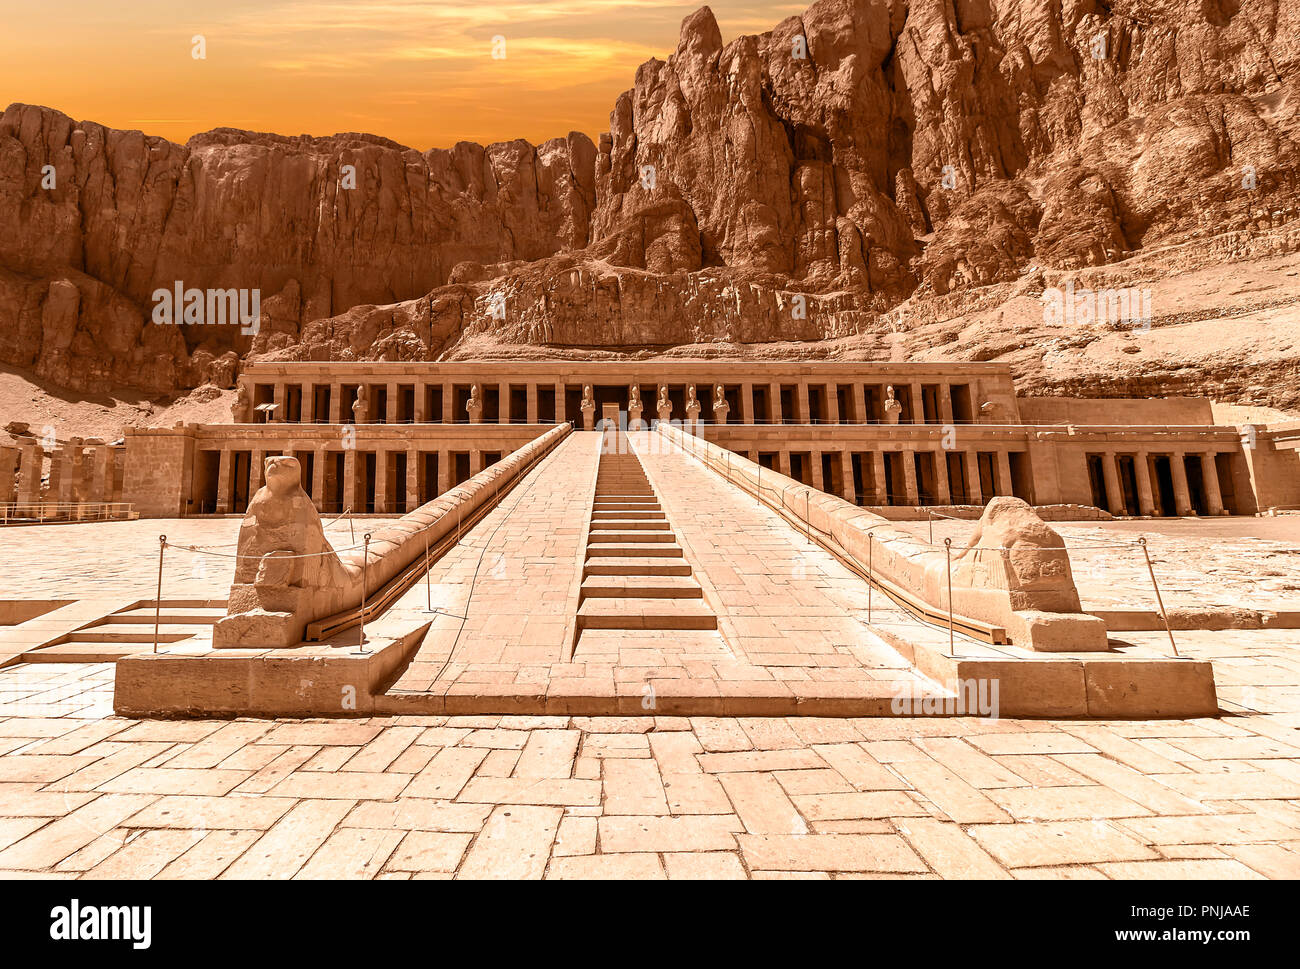 The Mortuary Temple of Hatshepsut, also known as the Djeser-Djeseru. Built for the Eighteenth Dynasty pharaoh Hatshepsut - Stock Image